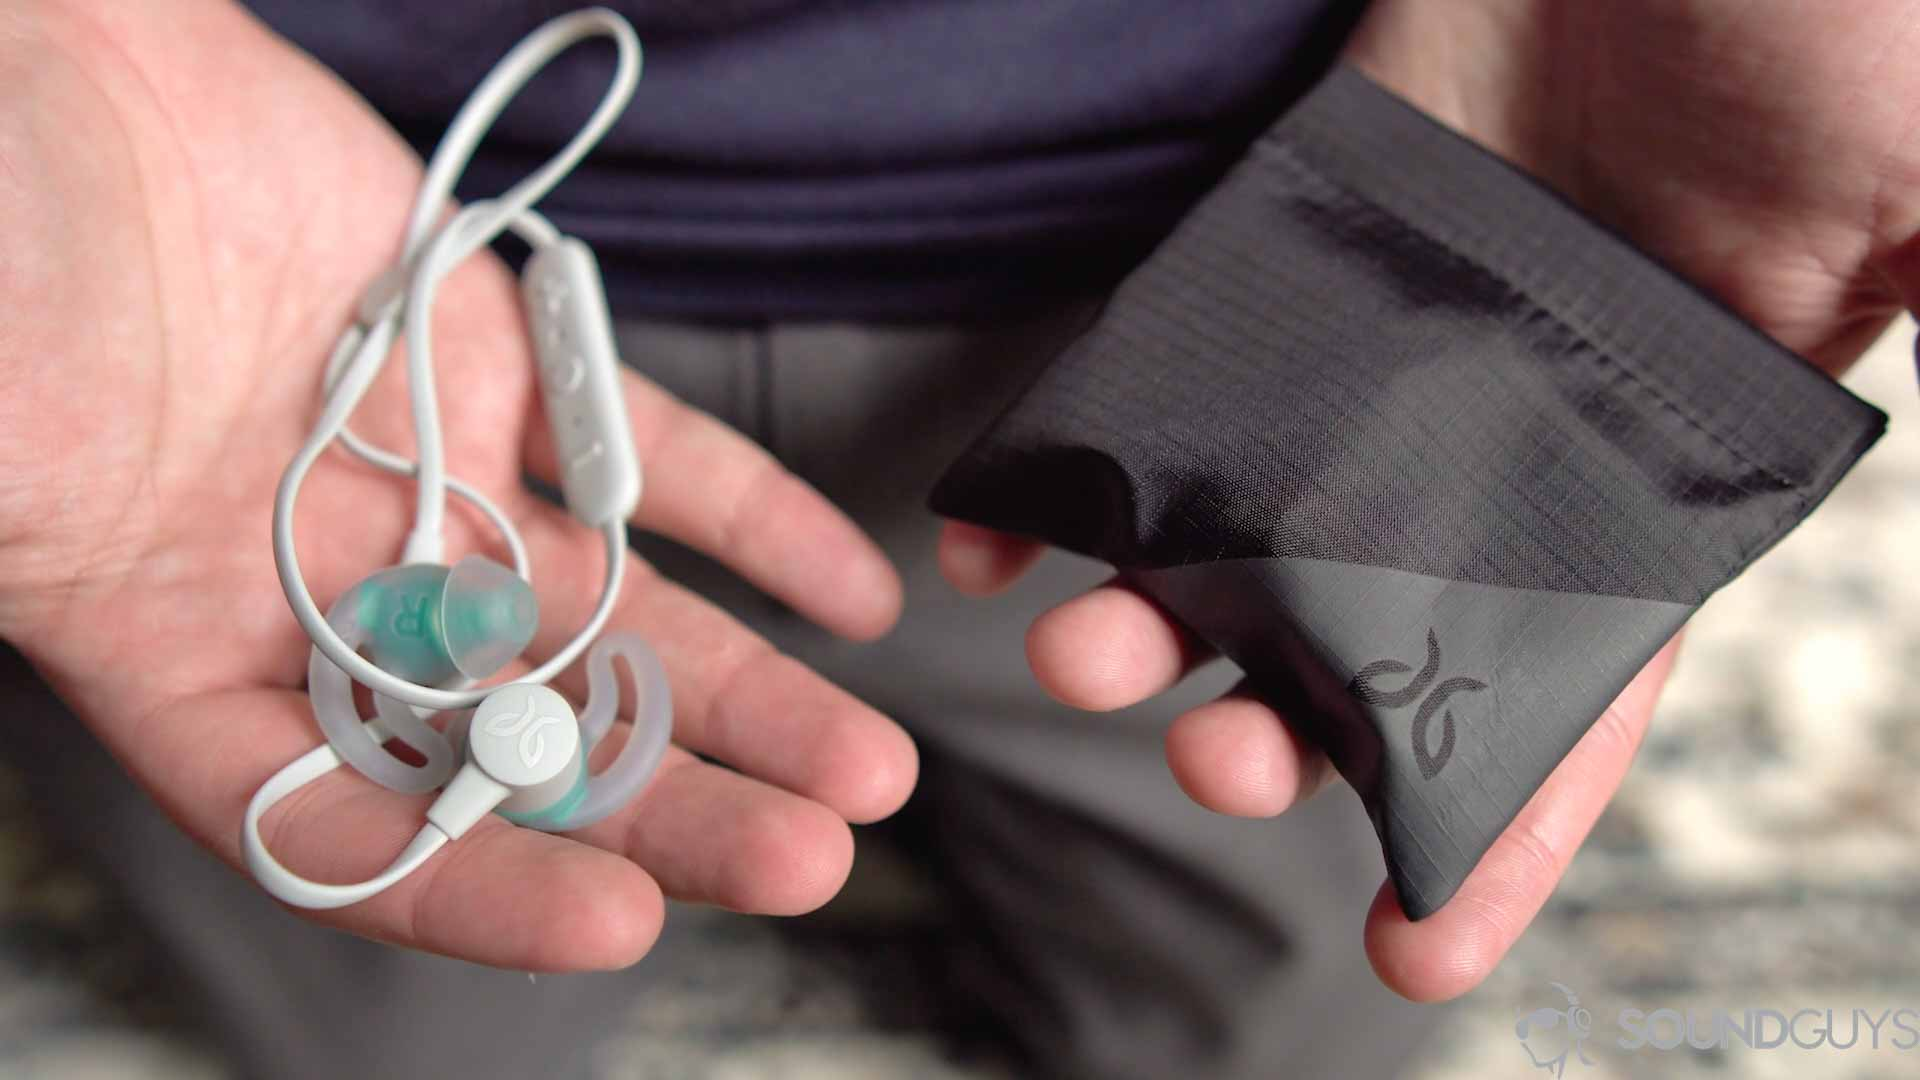 Samsung Galaxy S10 headphone: Jaybird Tarah with carrying pouch held by man.